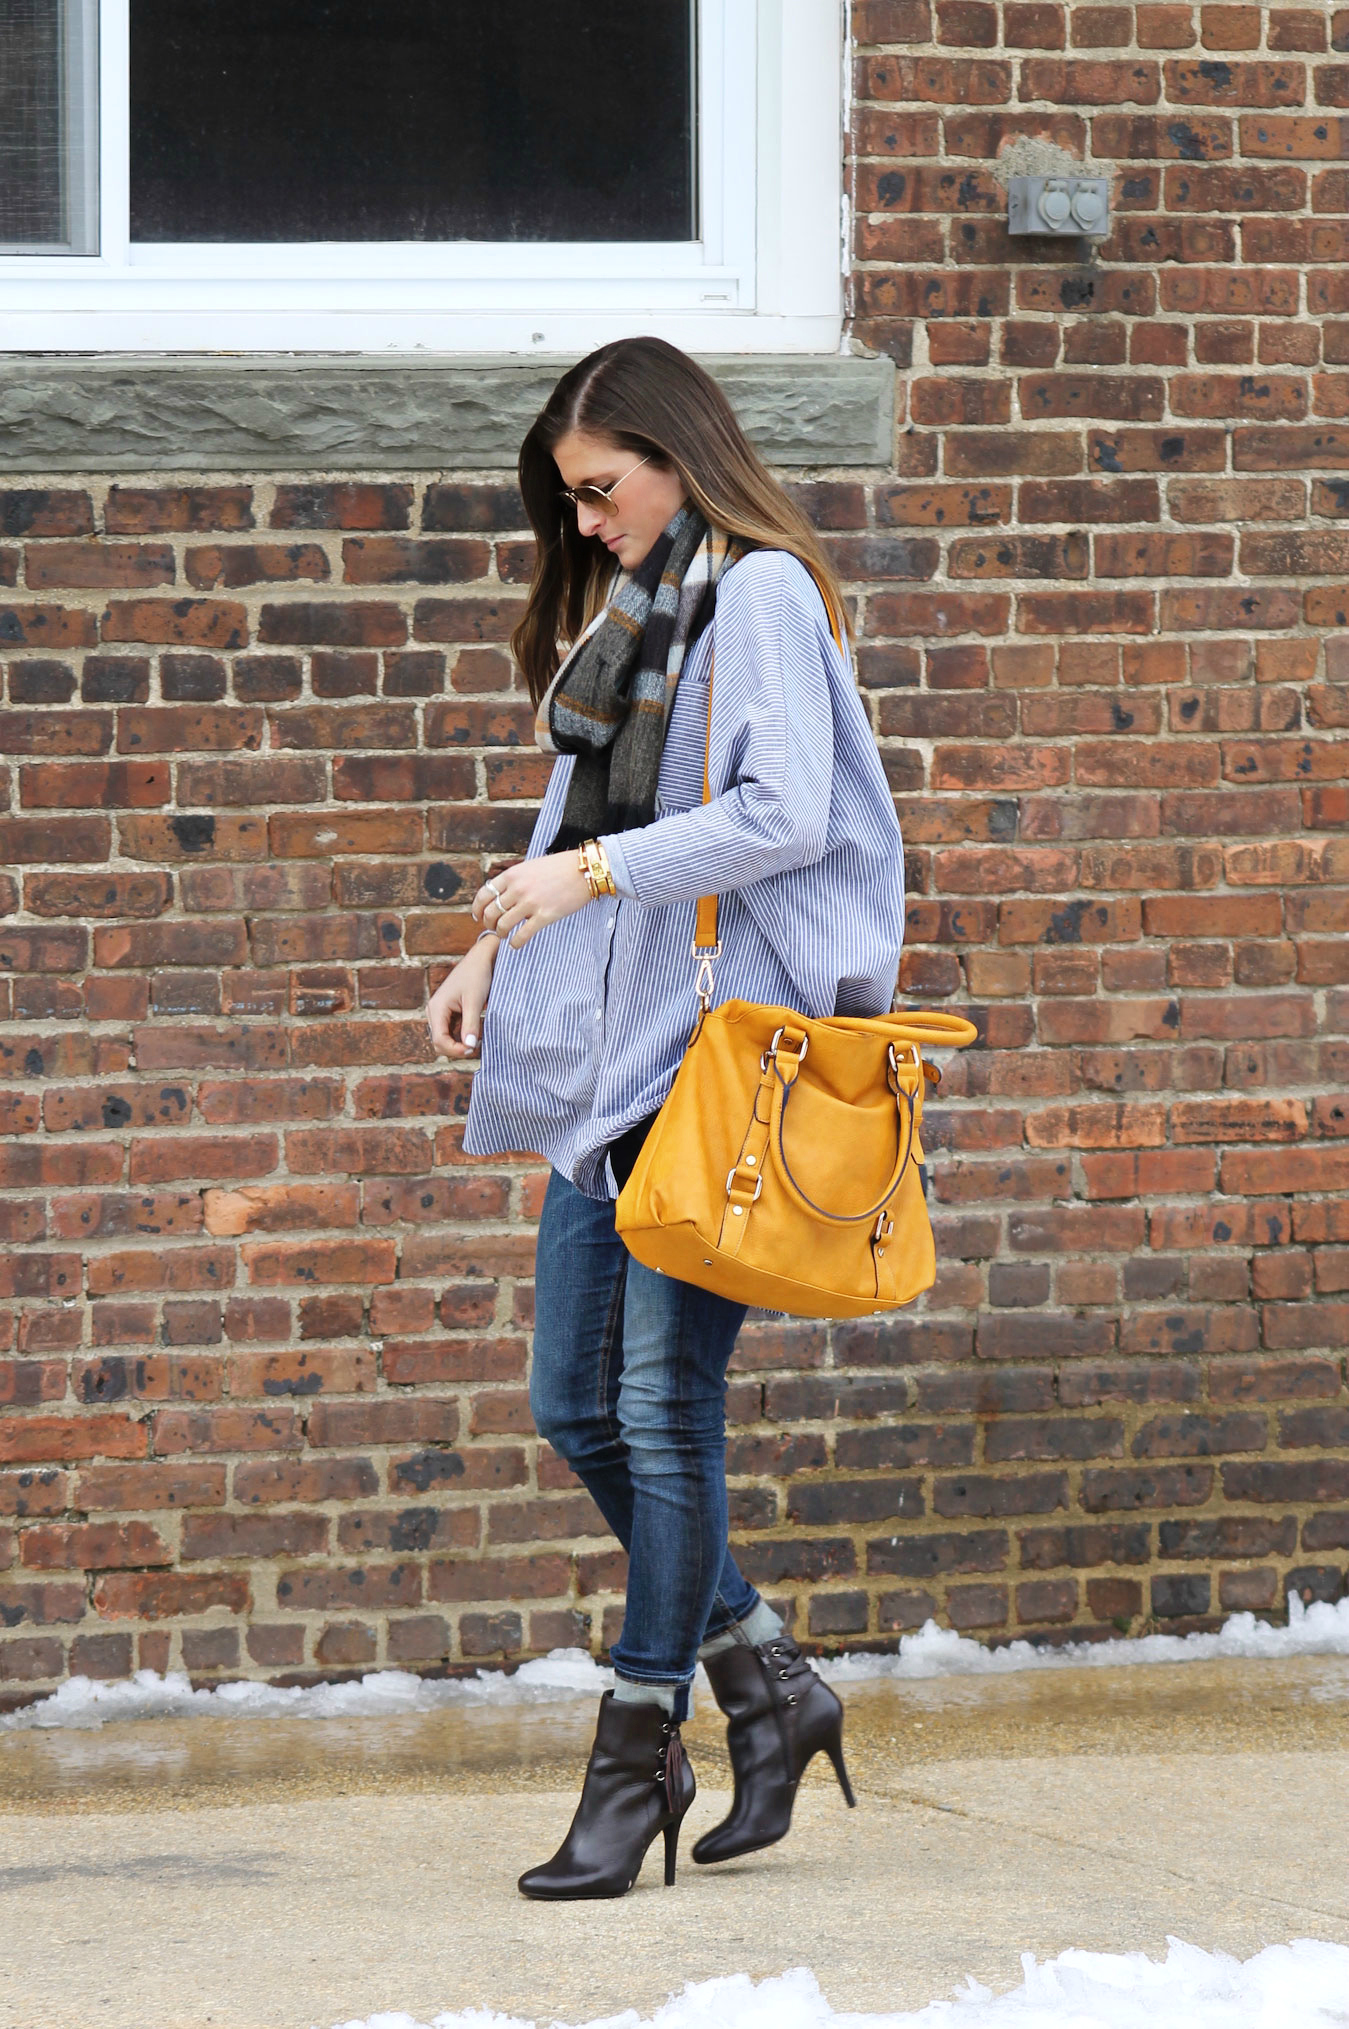 Street style tip of the day: Basics